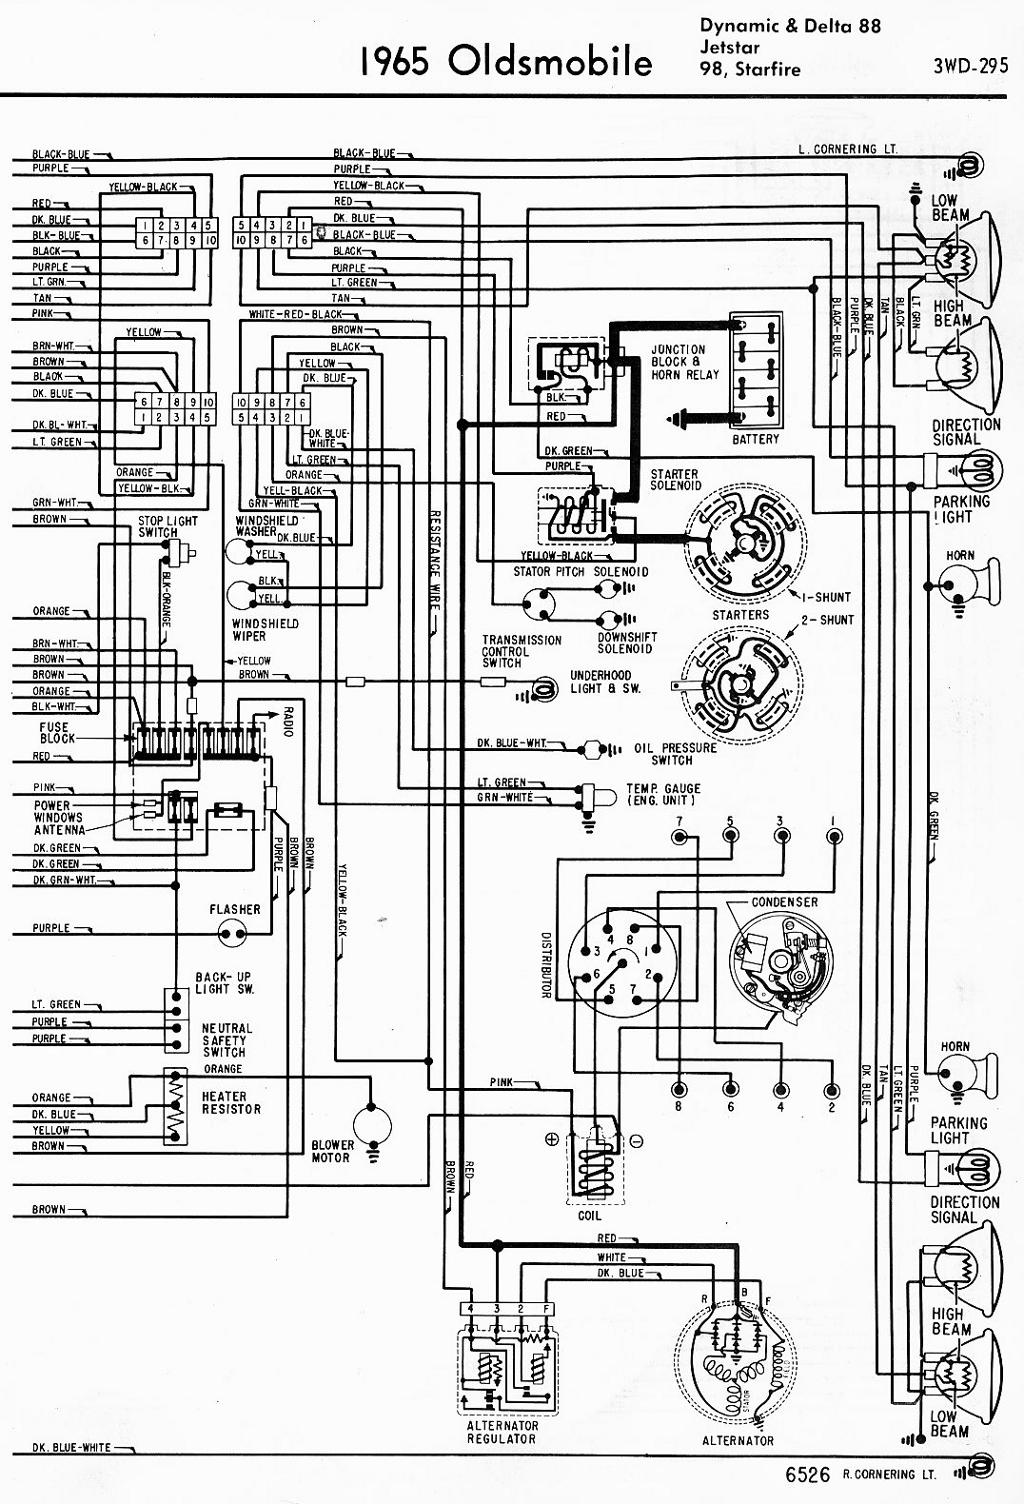 1998 oldsmobile 88 wiring diagram wiring diagram for professional u2022 1998 buick park avenue wiring diagram car radio wiring diagram 1998 oldsmobile [ 1024 x 1504 Pixel ]